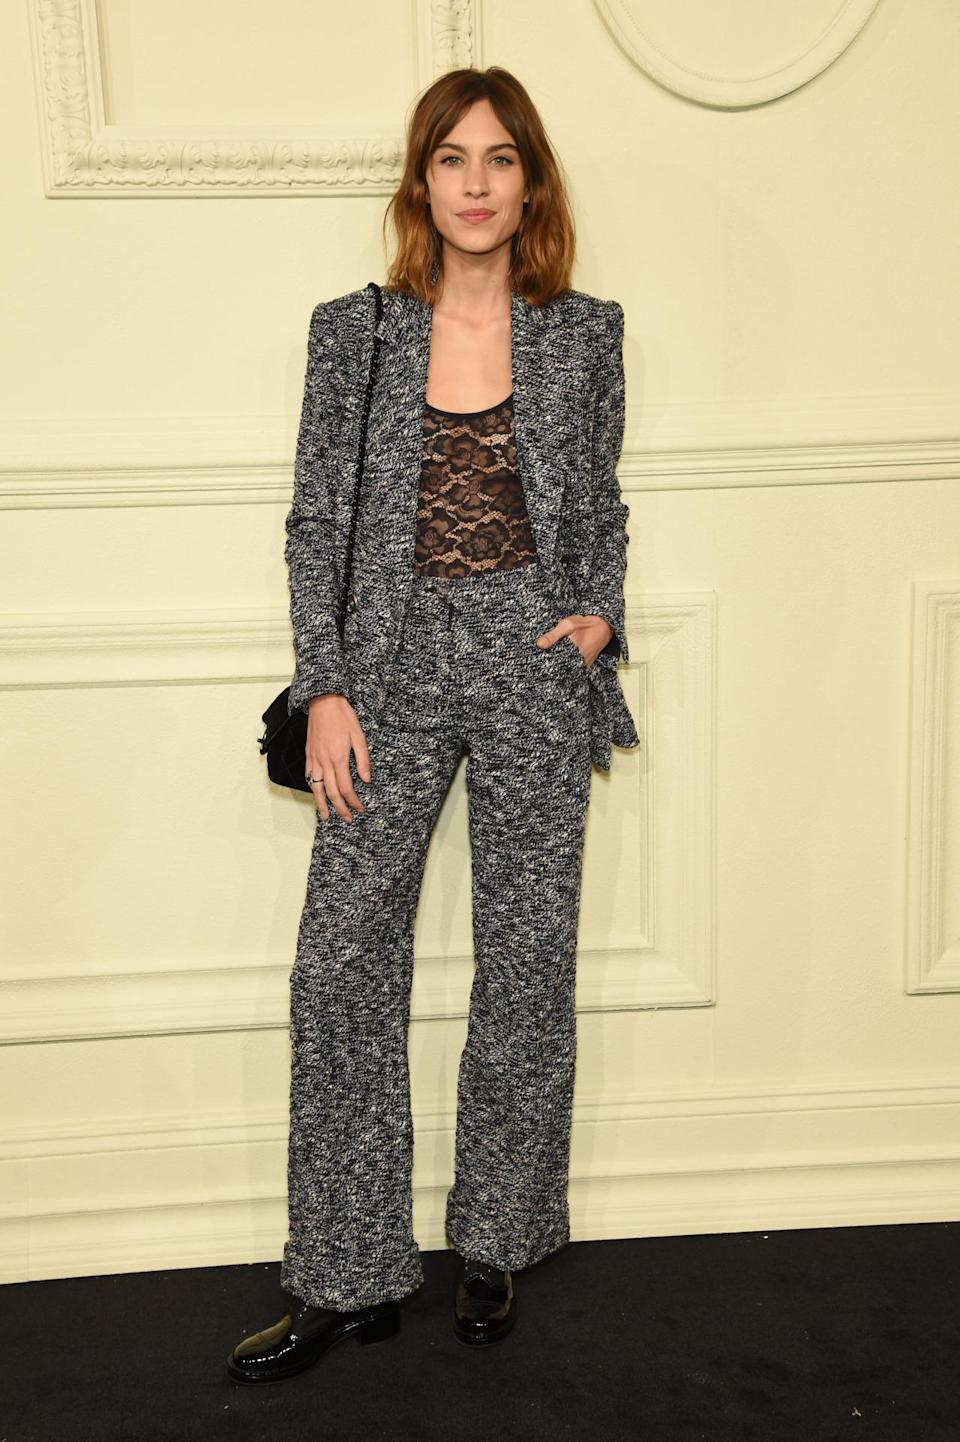 <p>The British model/designer/host looked rock-and-roll chic in a tweed suit with flared trousers.</p>